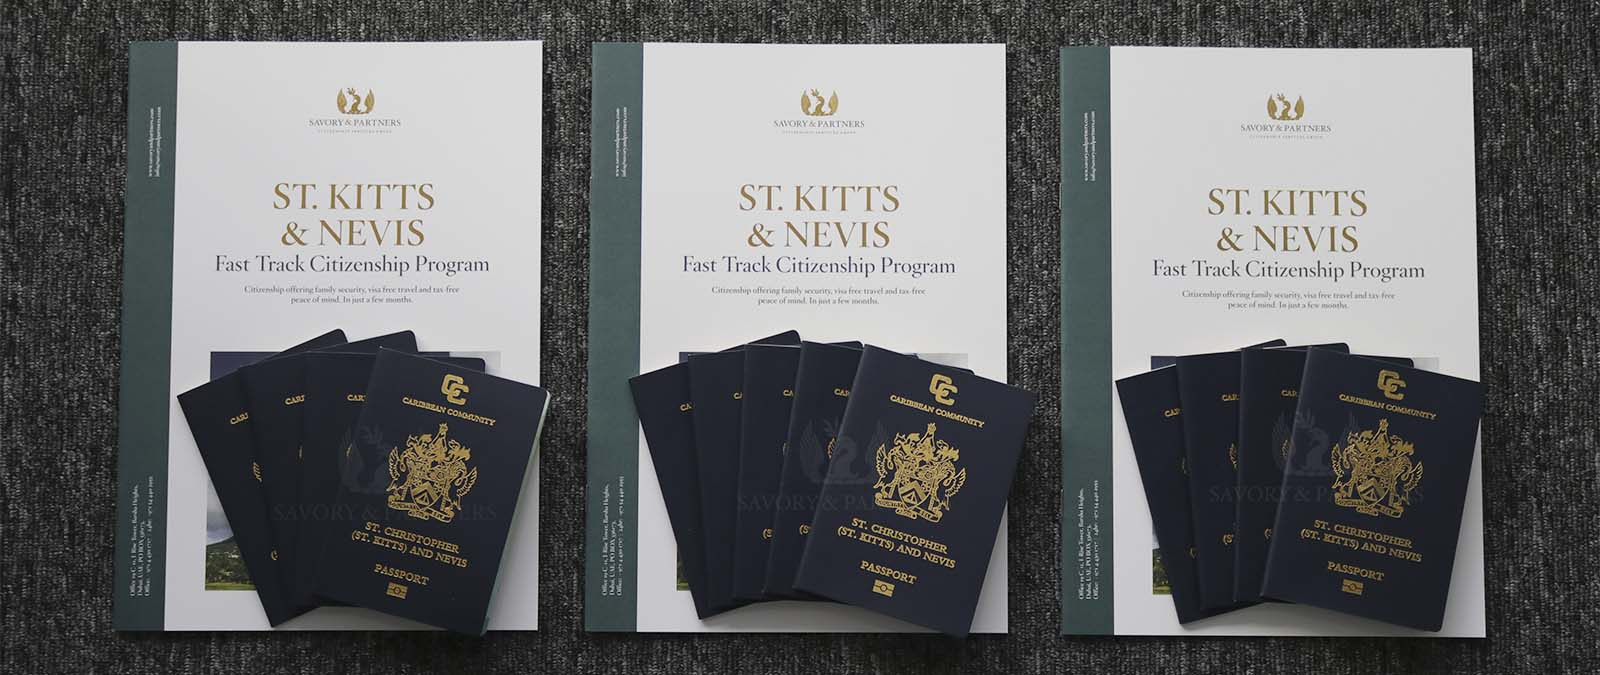 You can get the citizenship and passport of St Kitts and Nevis in exchange for a donation of USD150,000 or by real estate investment of at least USD200,000